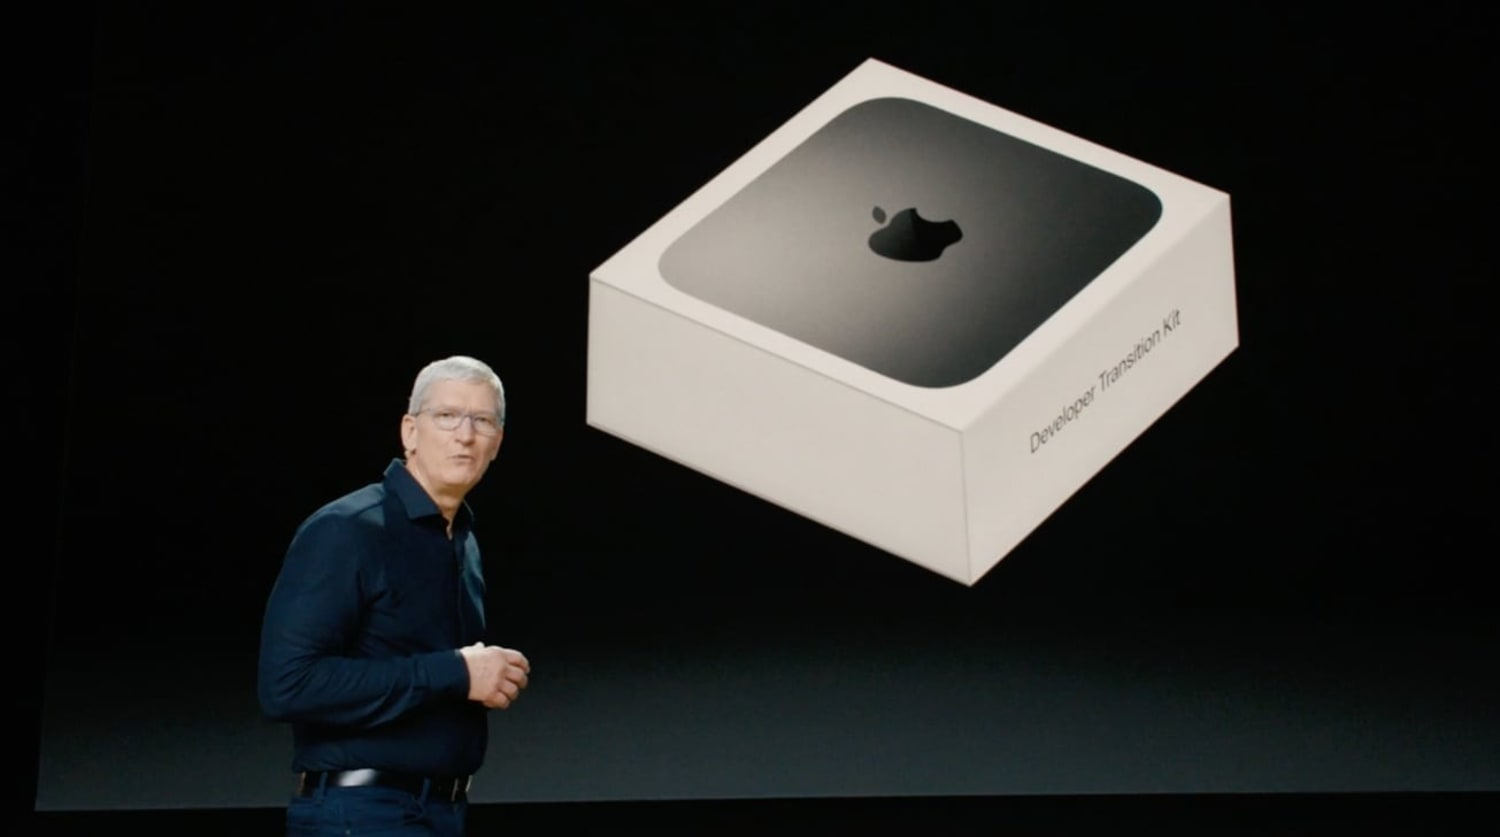 apple-silicon-will-become-the-industry-leading-performance-per-watt-20200630-1